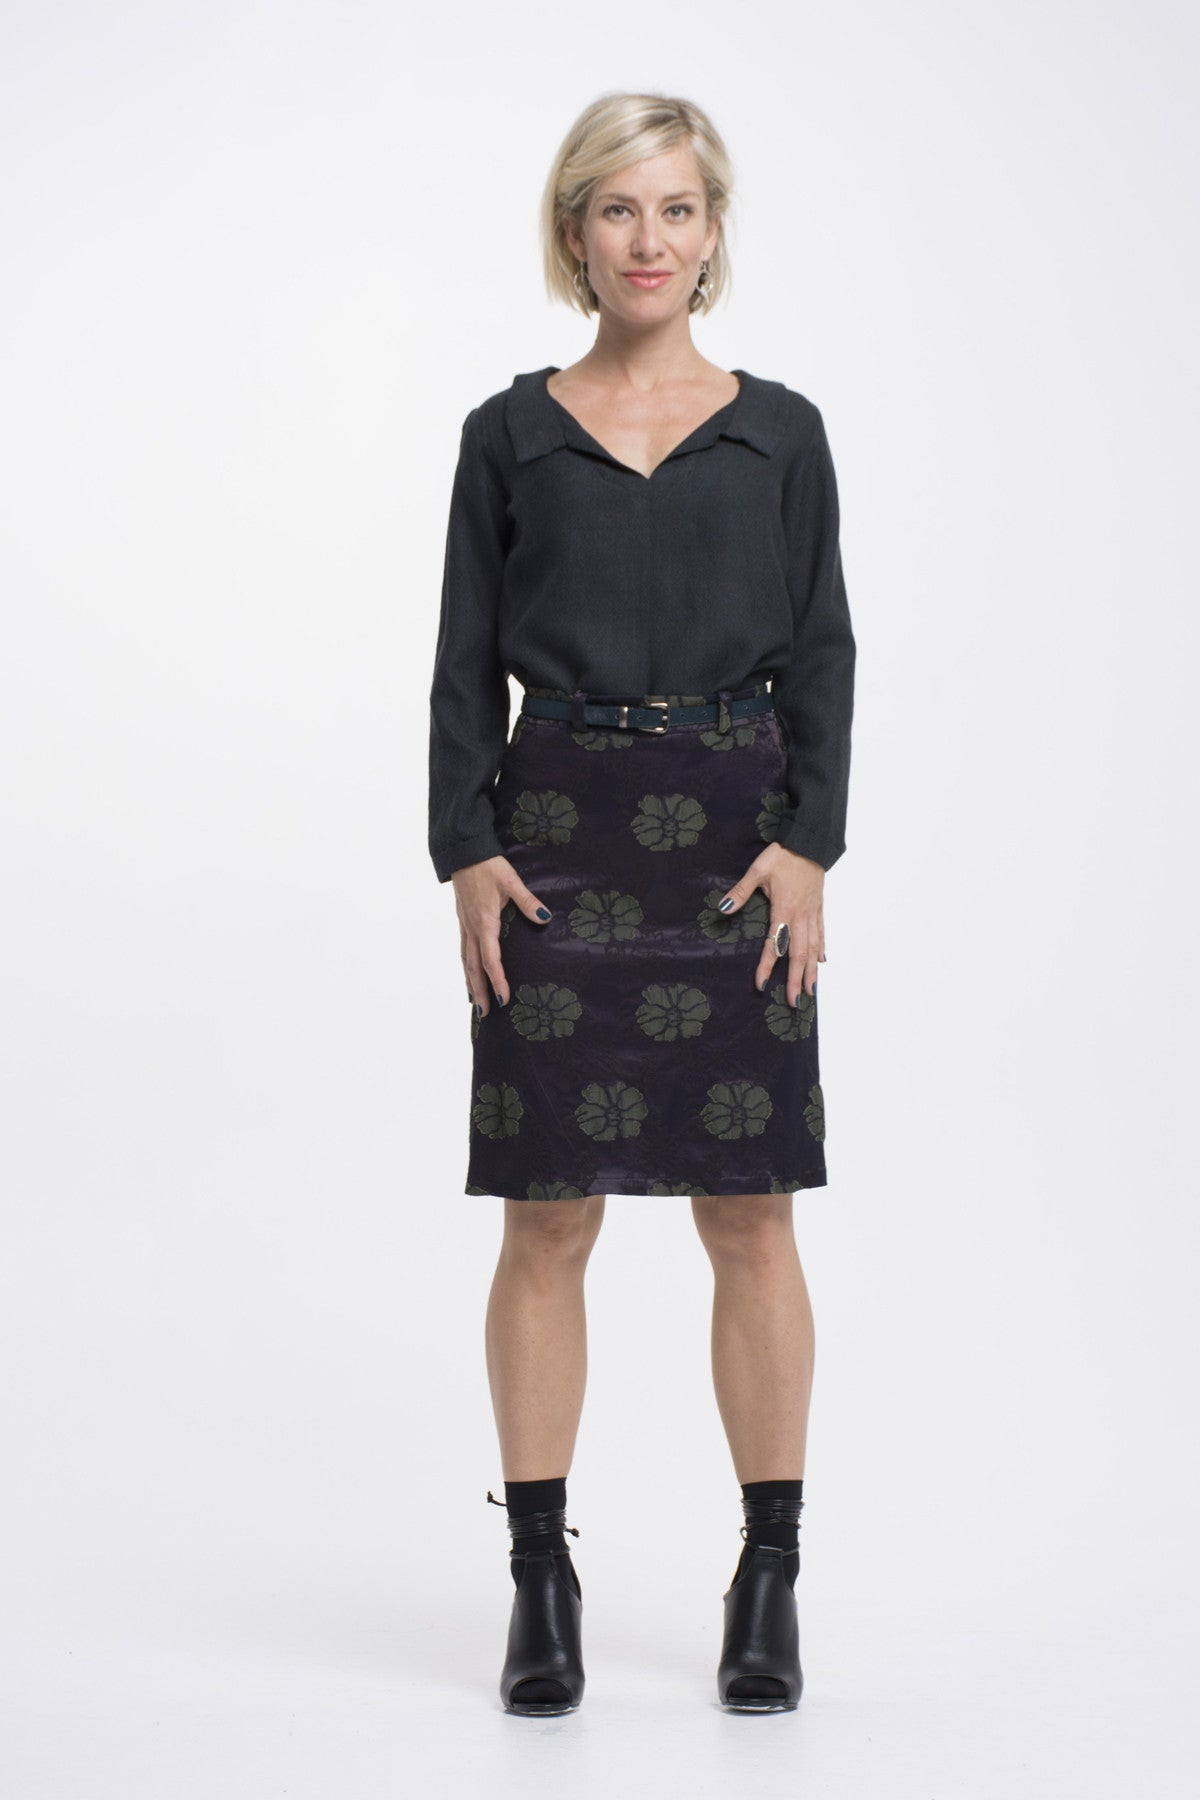 Vesta Macbeth Skirt - Mulberry